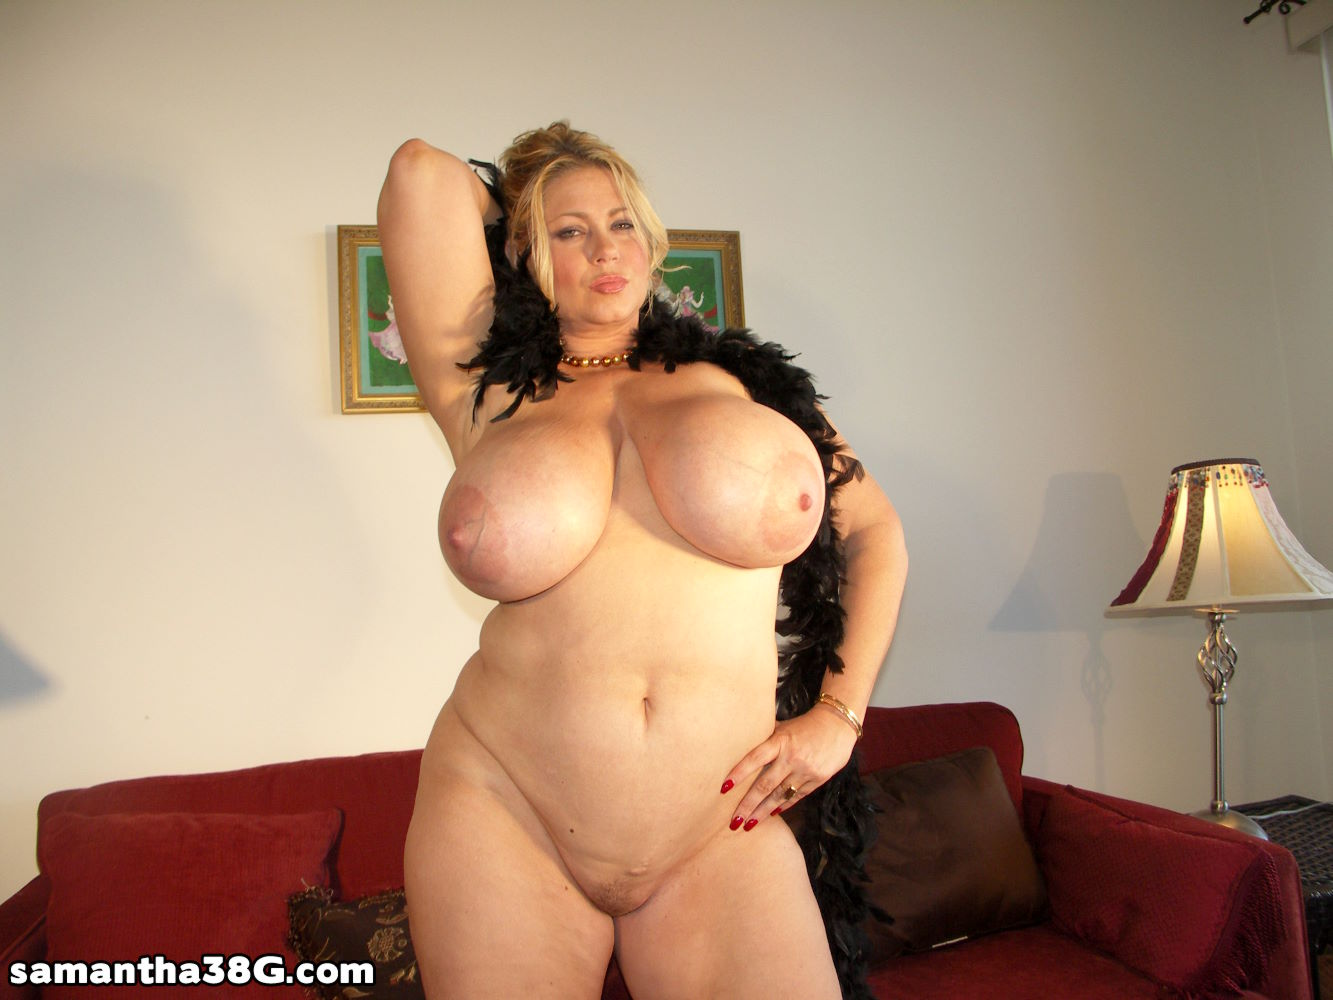 Not hot mature adult with perfect tits can recommend